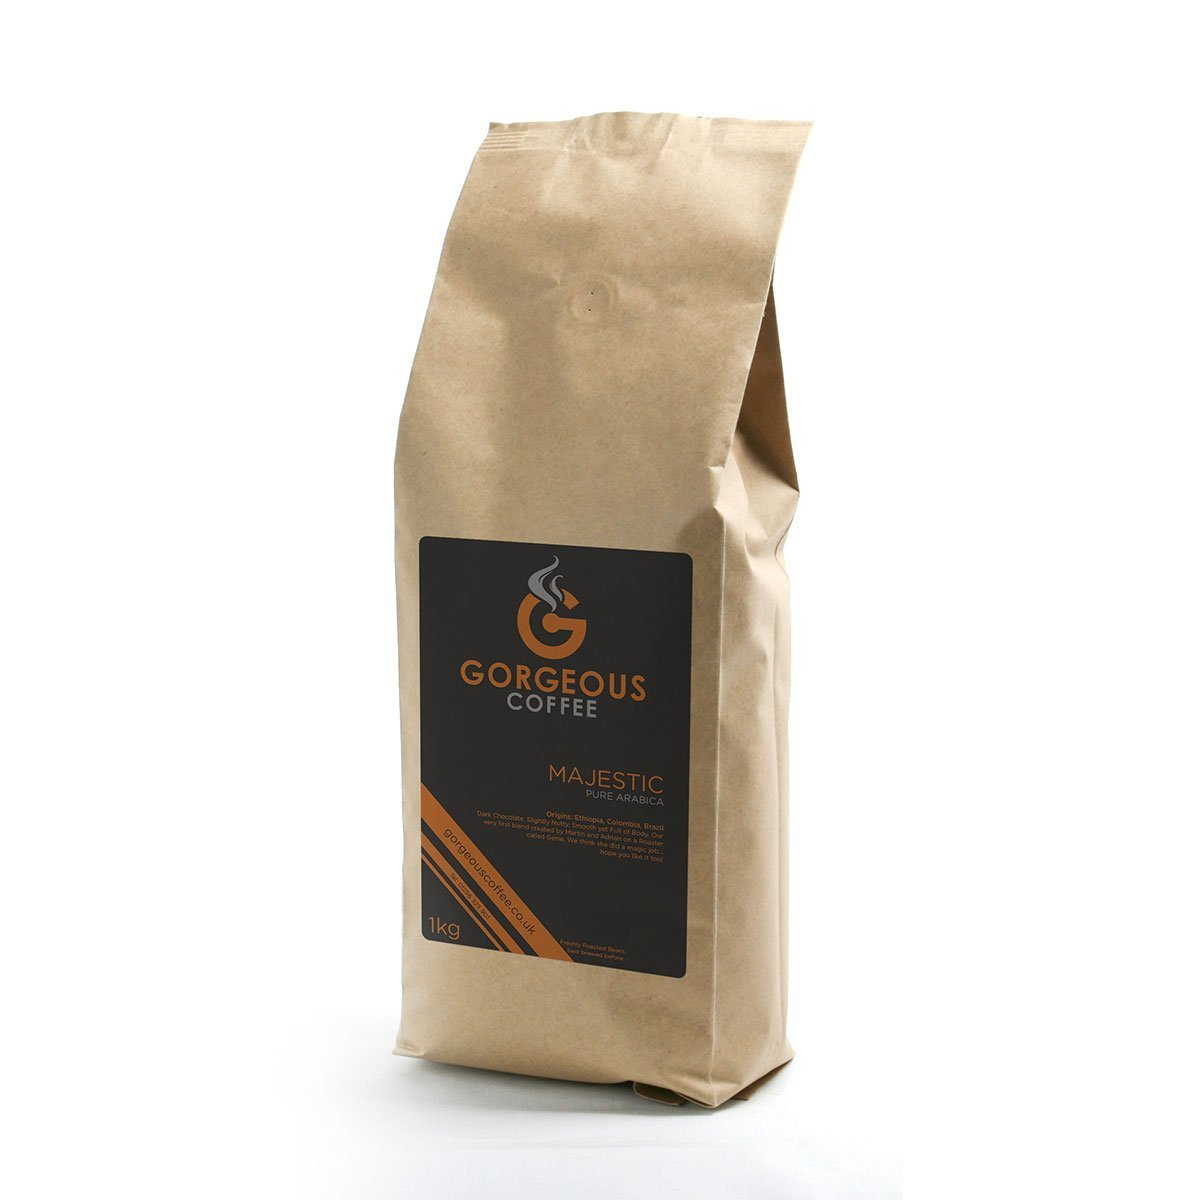 Gorgeous Coffee Majestic Blend - 1kg